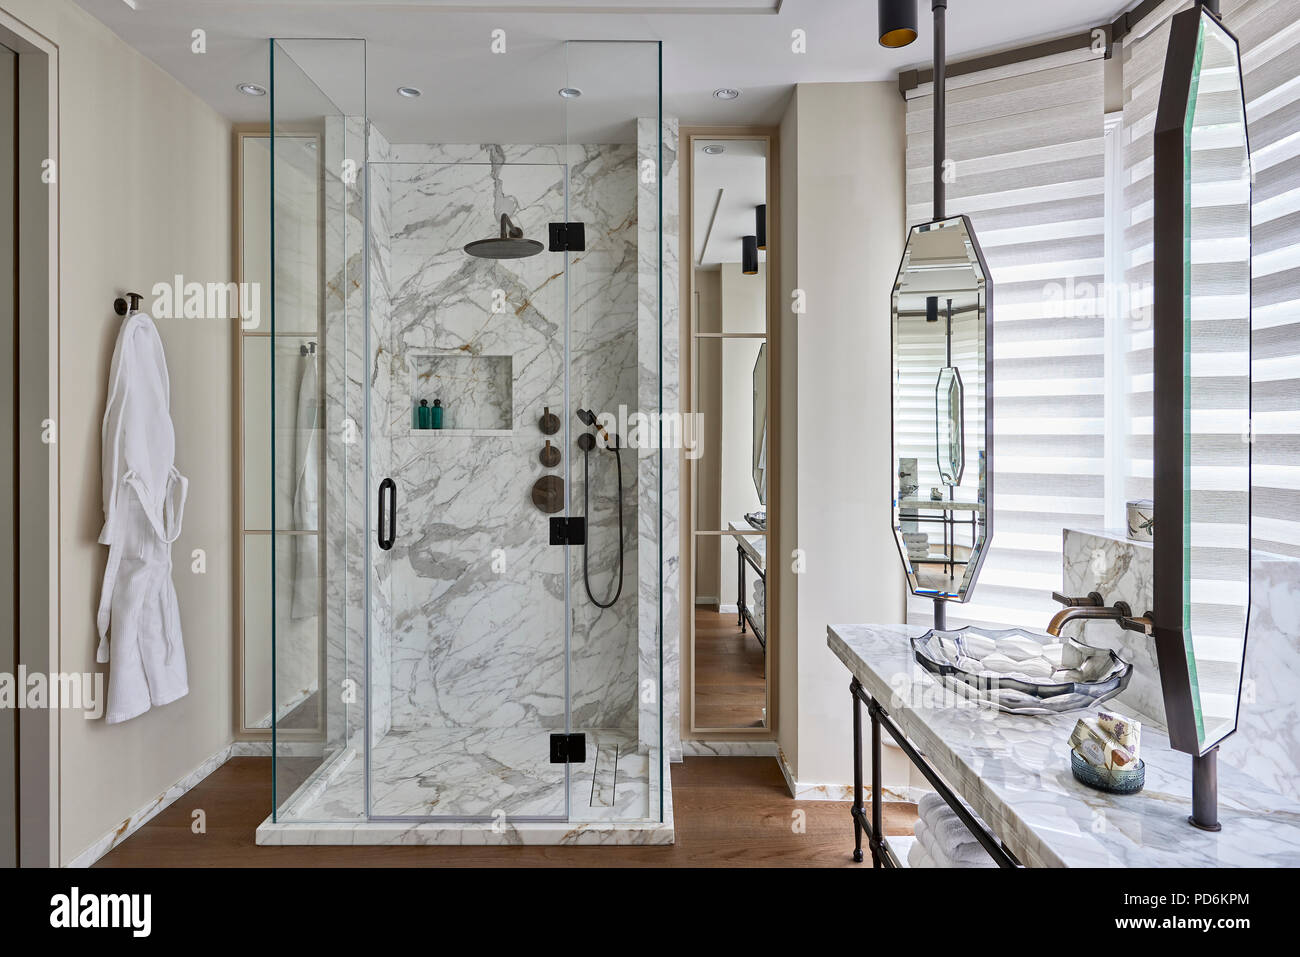 Bathrobe hangs with marble shower cubicle and lotus basin - Stock Image